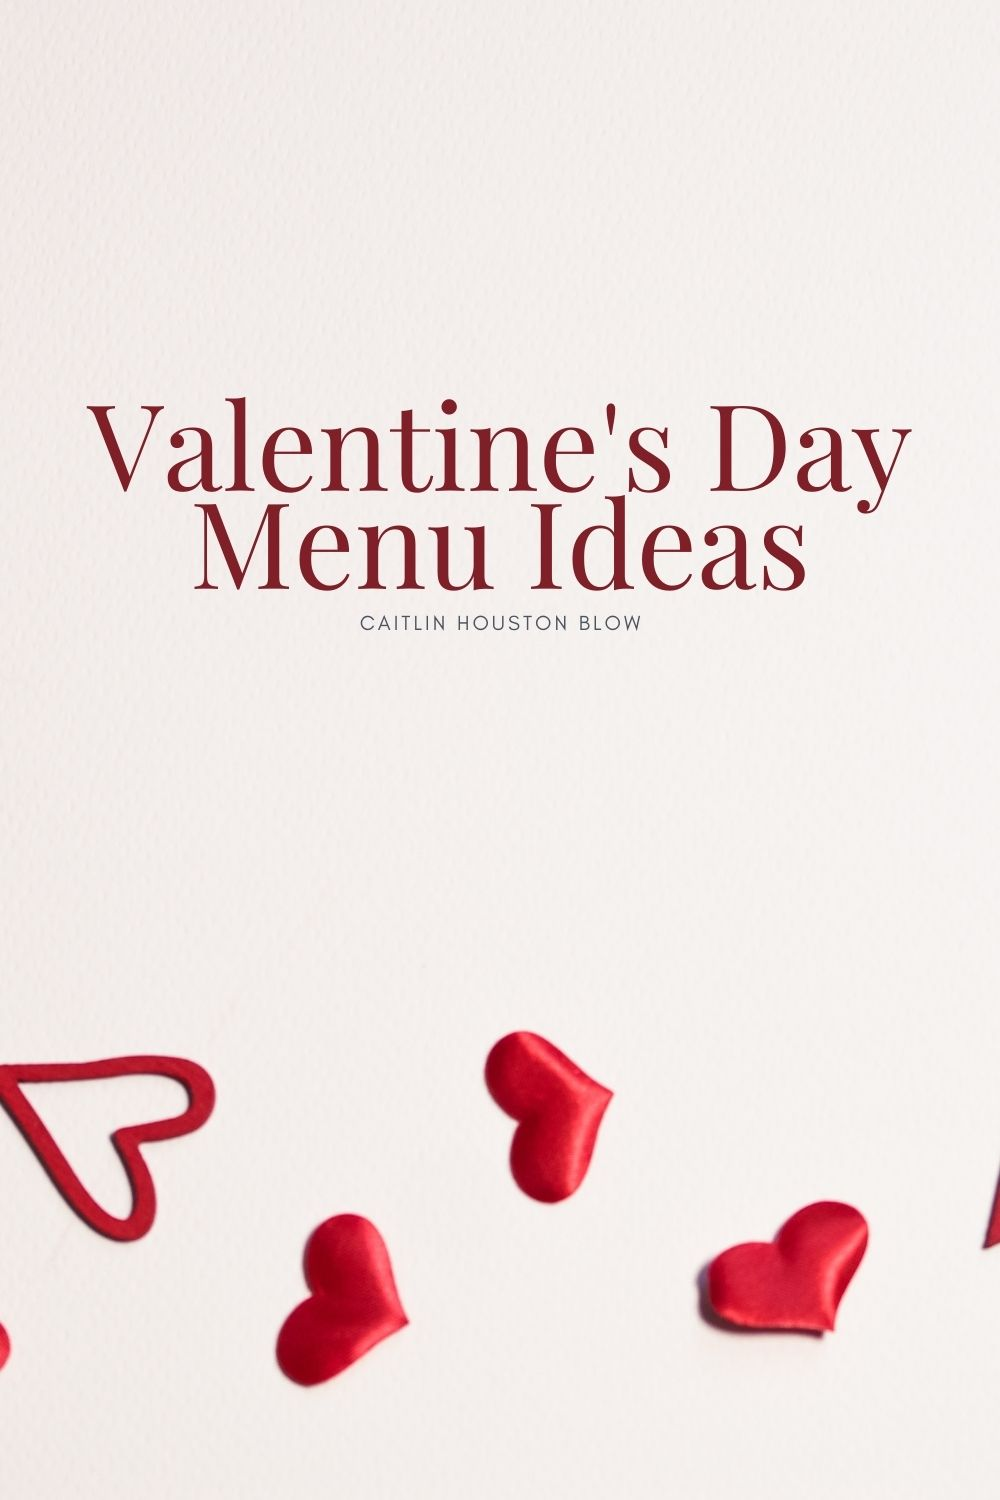 Valentines Day Menu Ideas